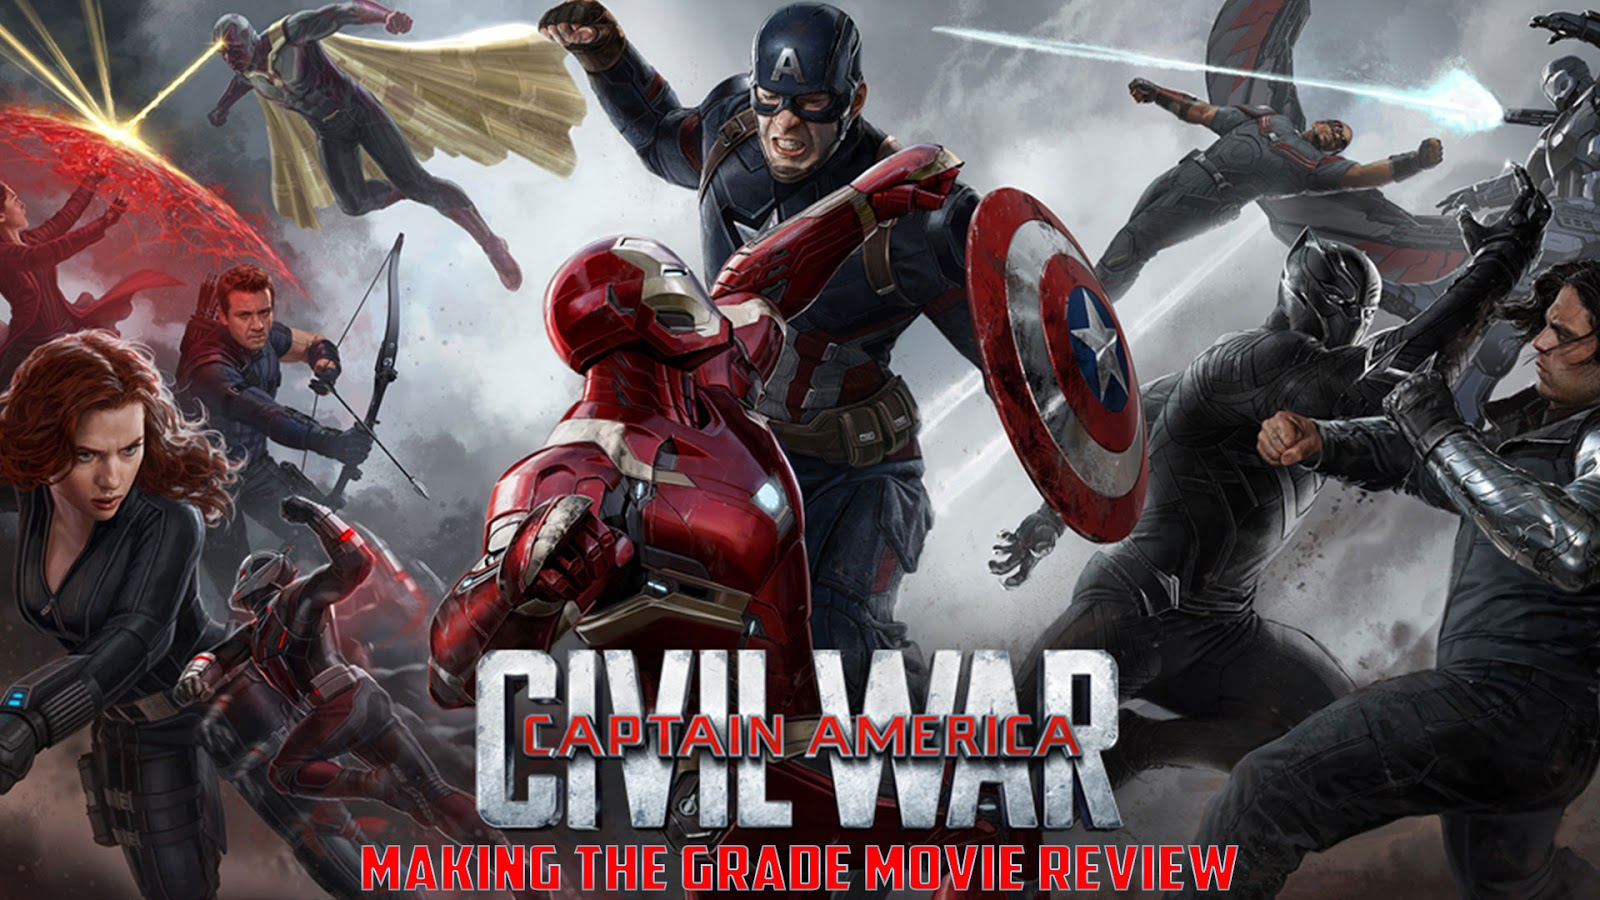 a report on the civil war in america Captain america civil war is a superhero action film about a rift caused between various avengers factions following political interference violence.